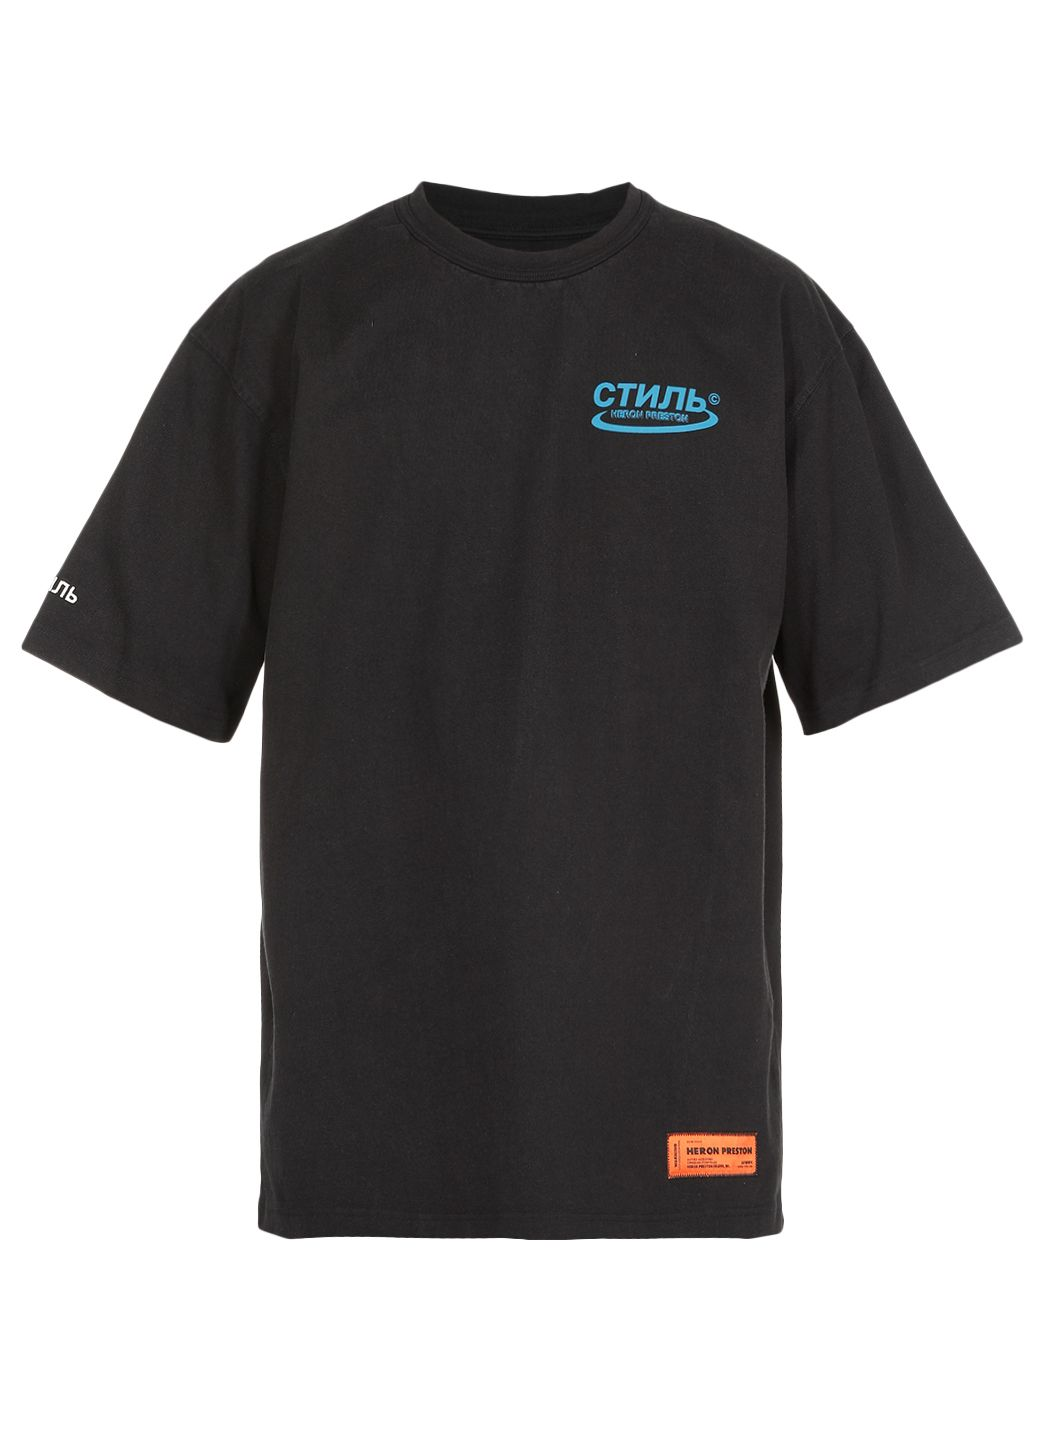 T-shirt oversize in cotone